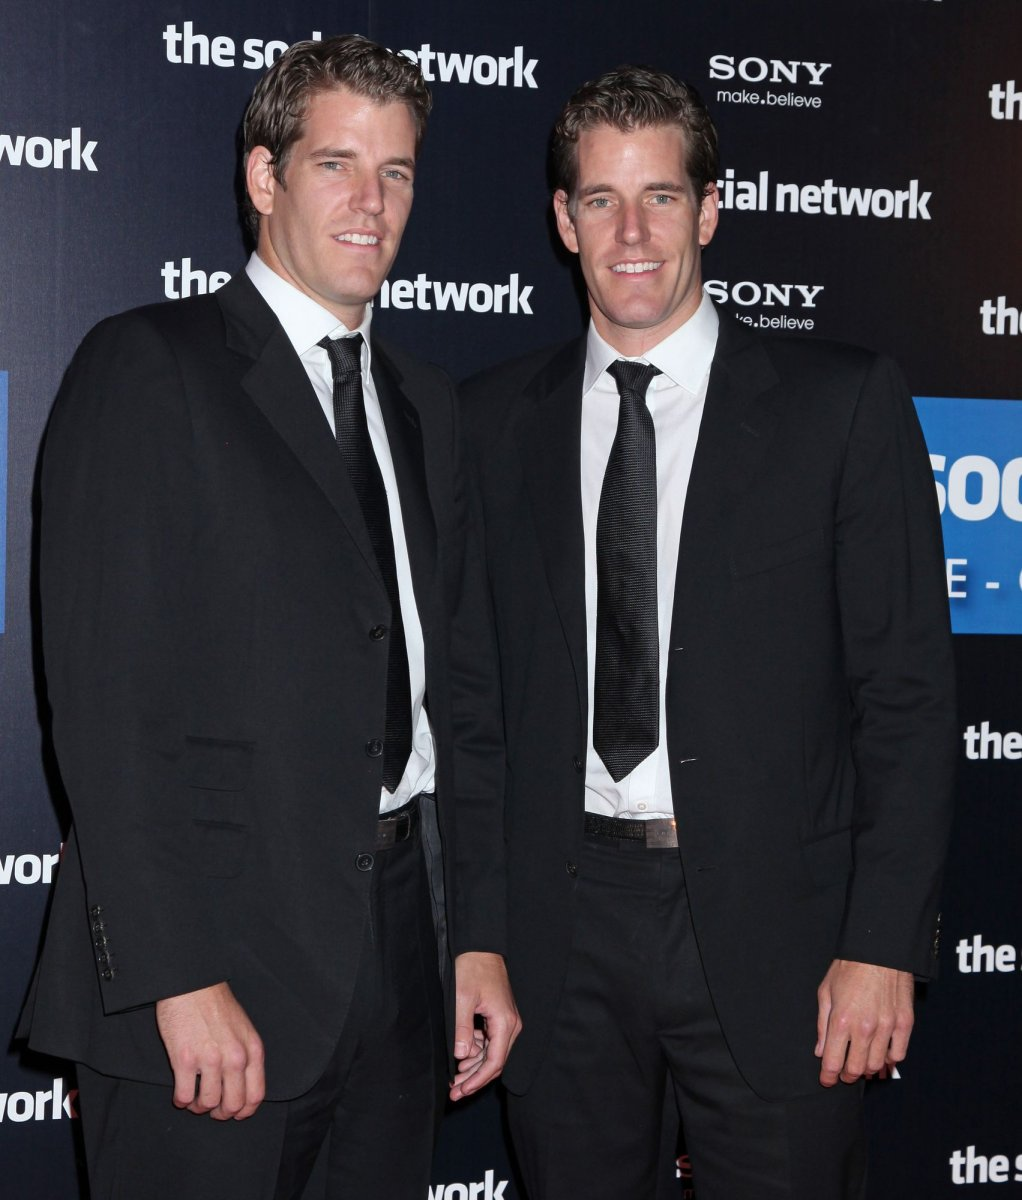 Winklevoss twins land Virgin Galactic tickets to space, pay with